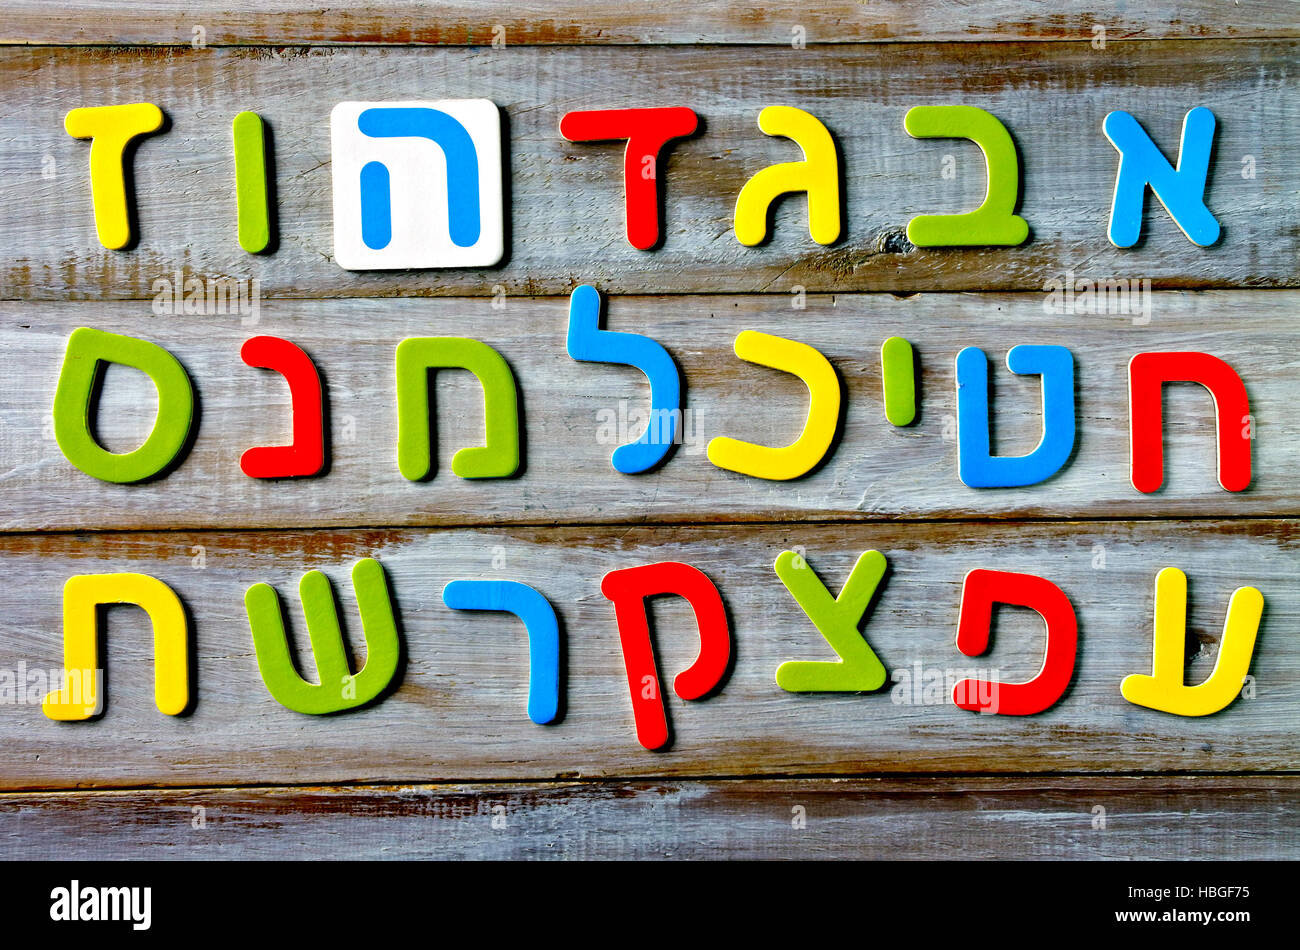 Hebrew alphabet letters and characters background. Foreign language education concept - Stock Image